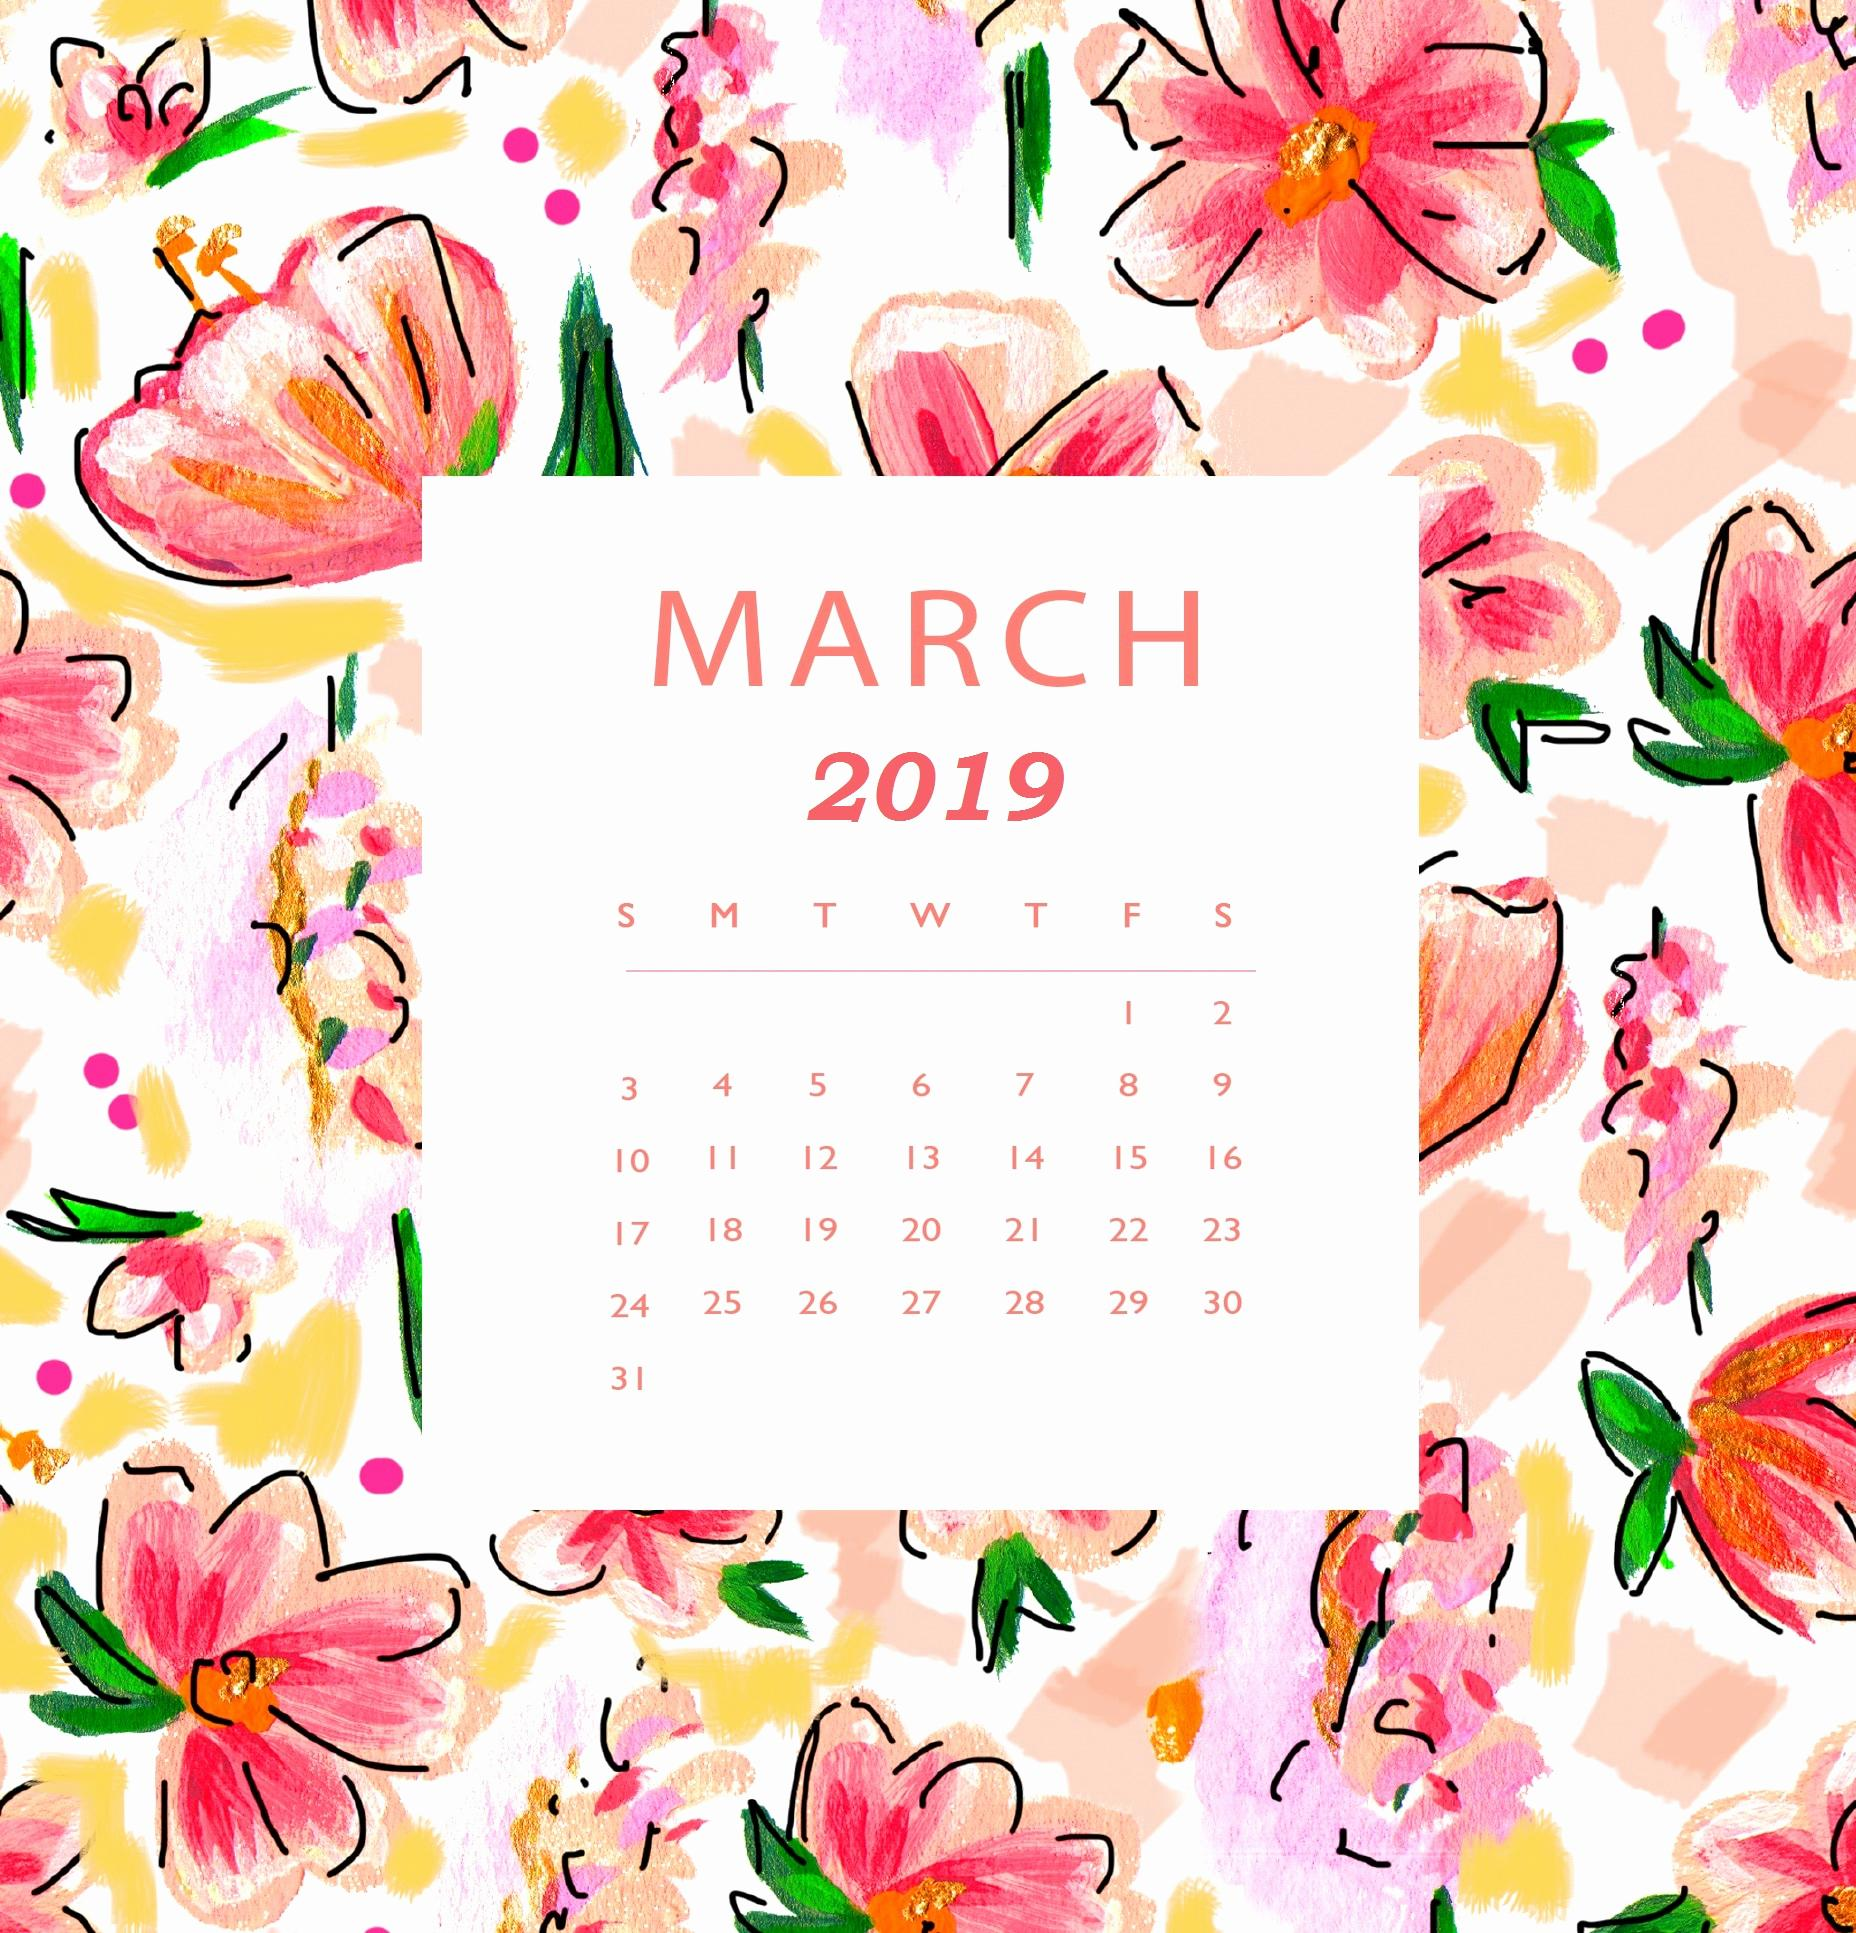 Floral March 2019 iPhone Calendar Wallpaper